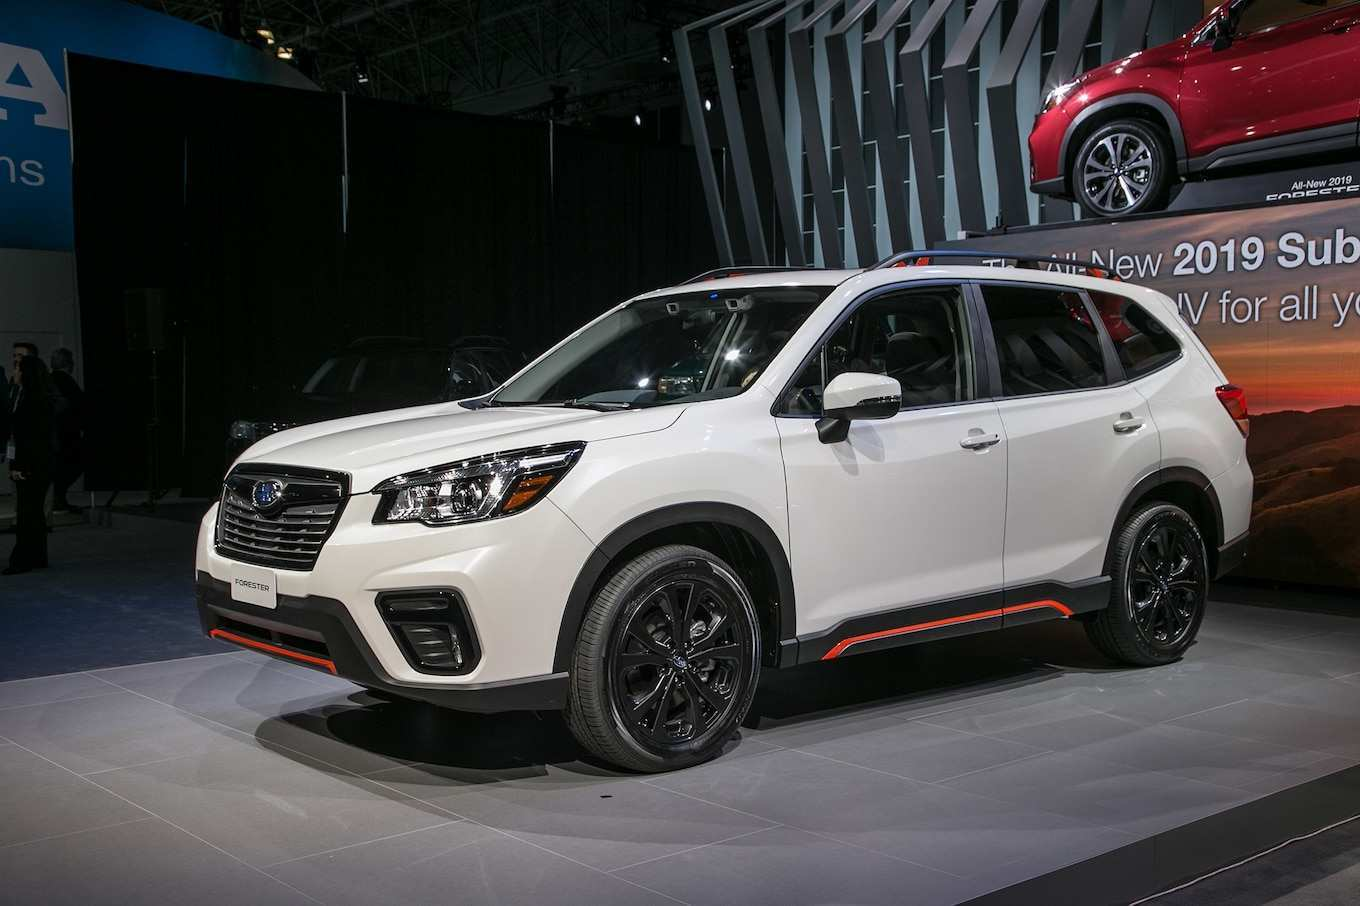 26 All New Subaru Forester 2019 Ground Clearance Rumors Configurations for Subaru Forester 2019 Ground Clearance Rumors